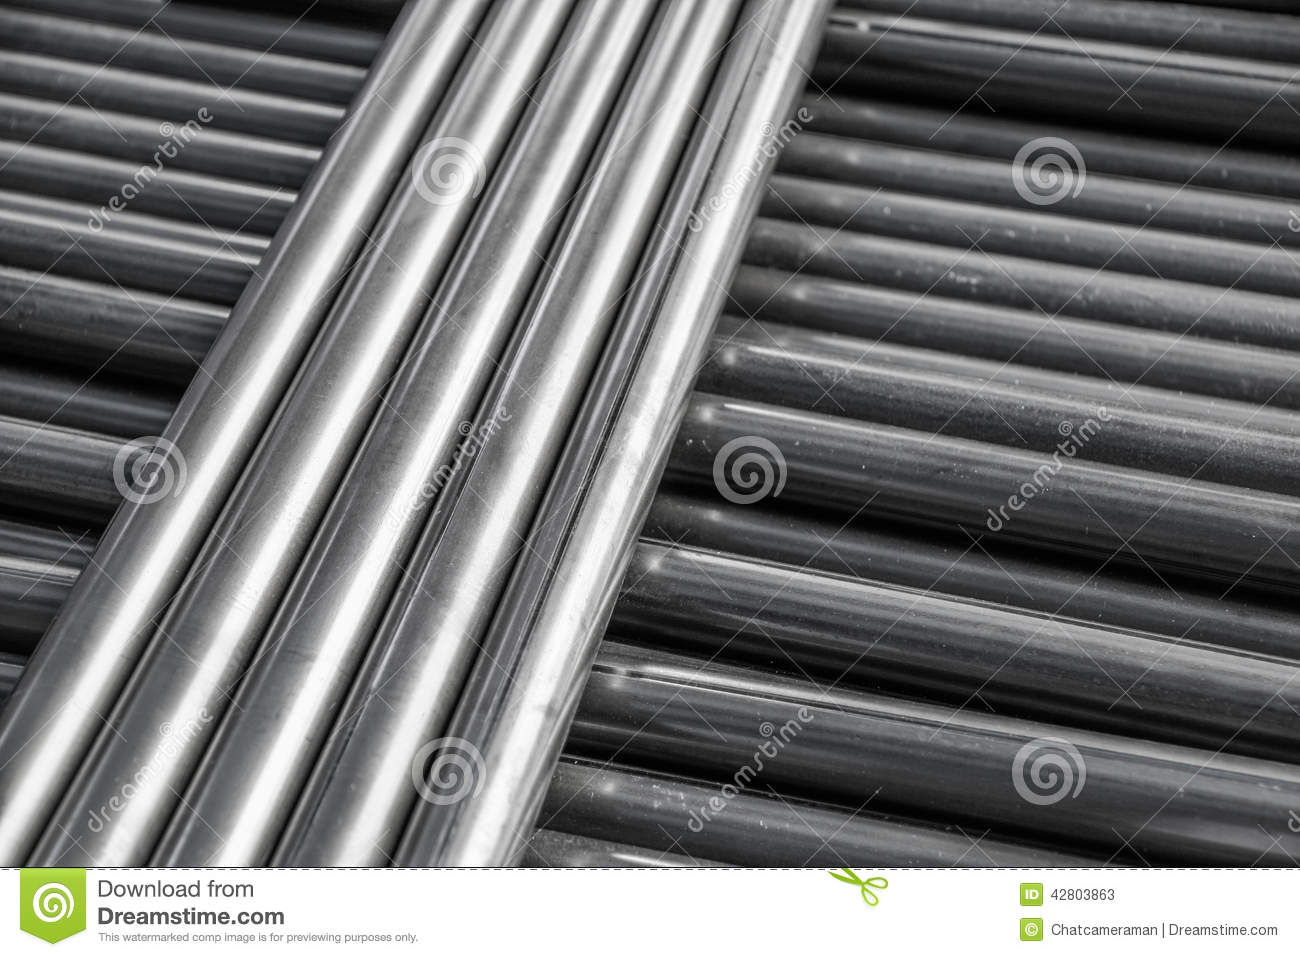 Steel pipe products and metal file on a working table